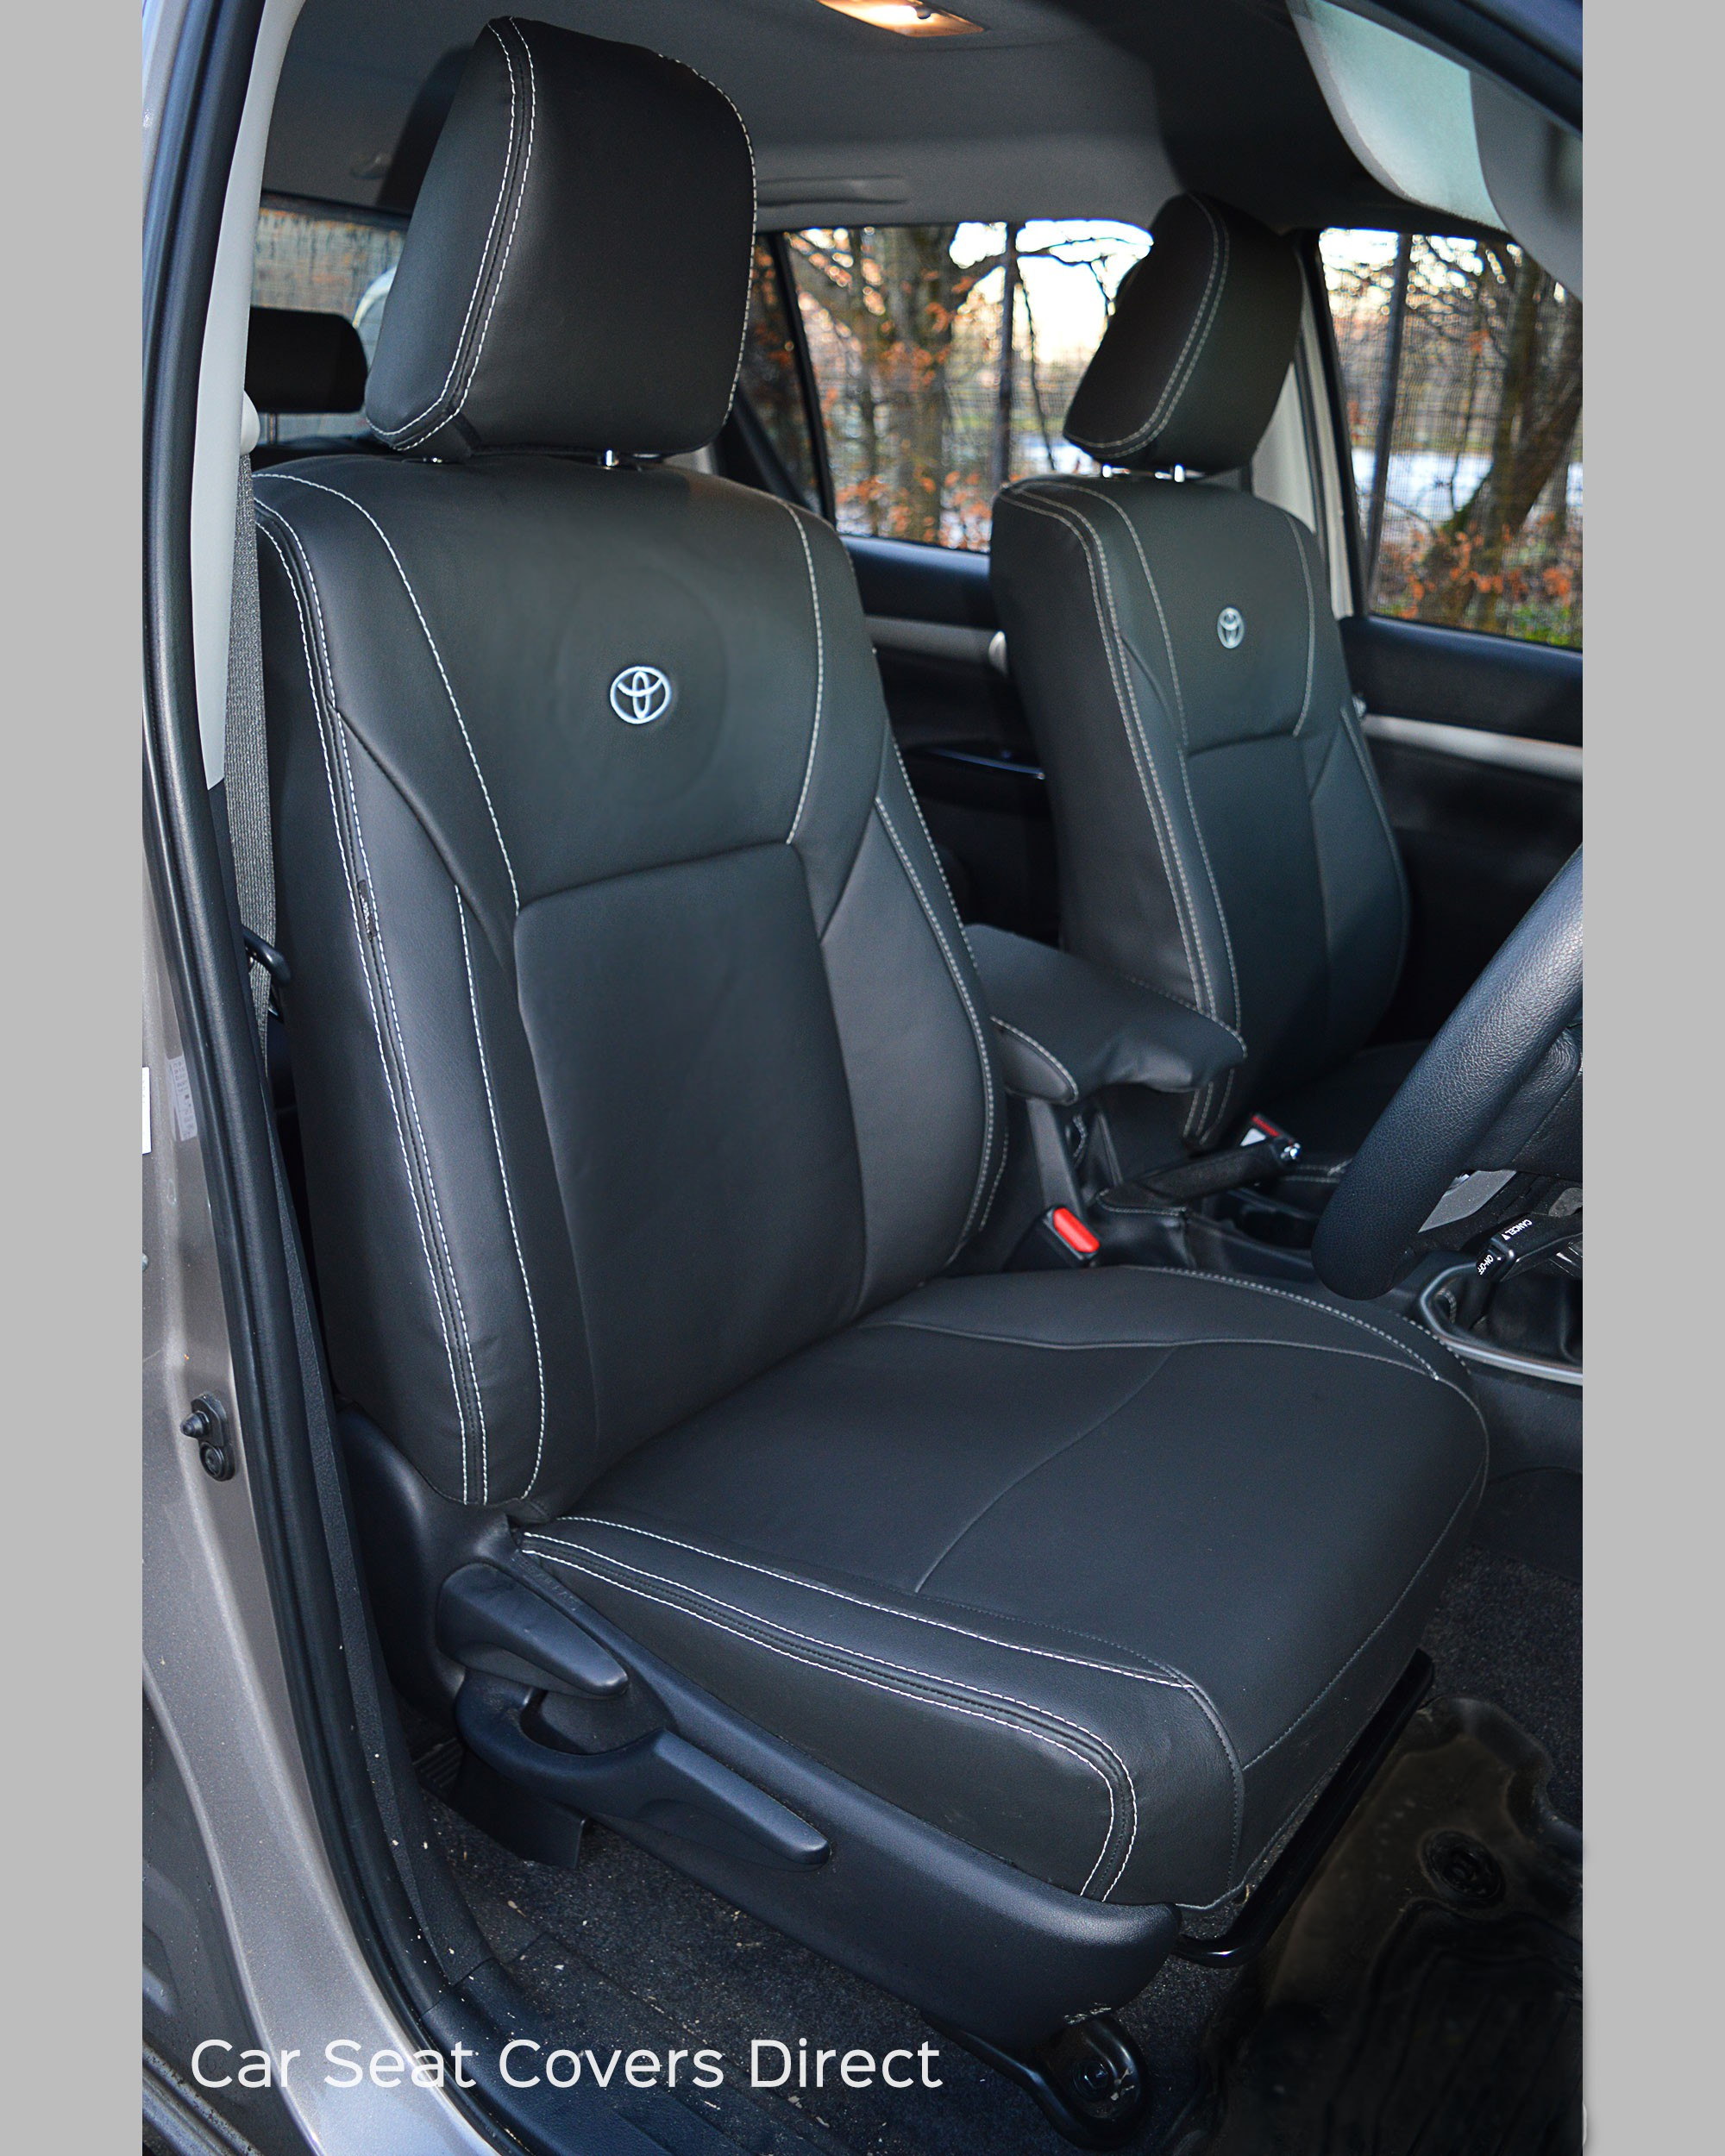 Toyota Hilux Seat Covers Drivers Seat